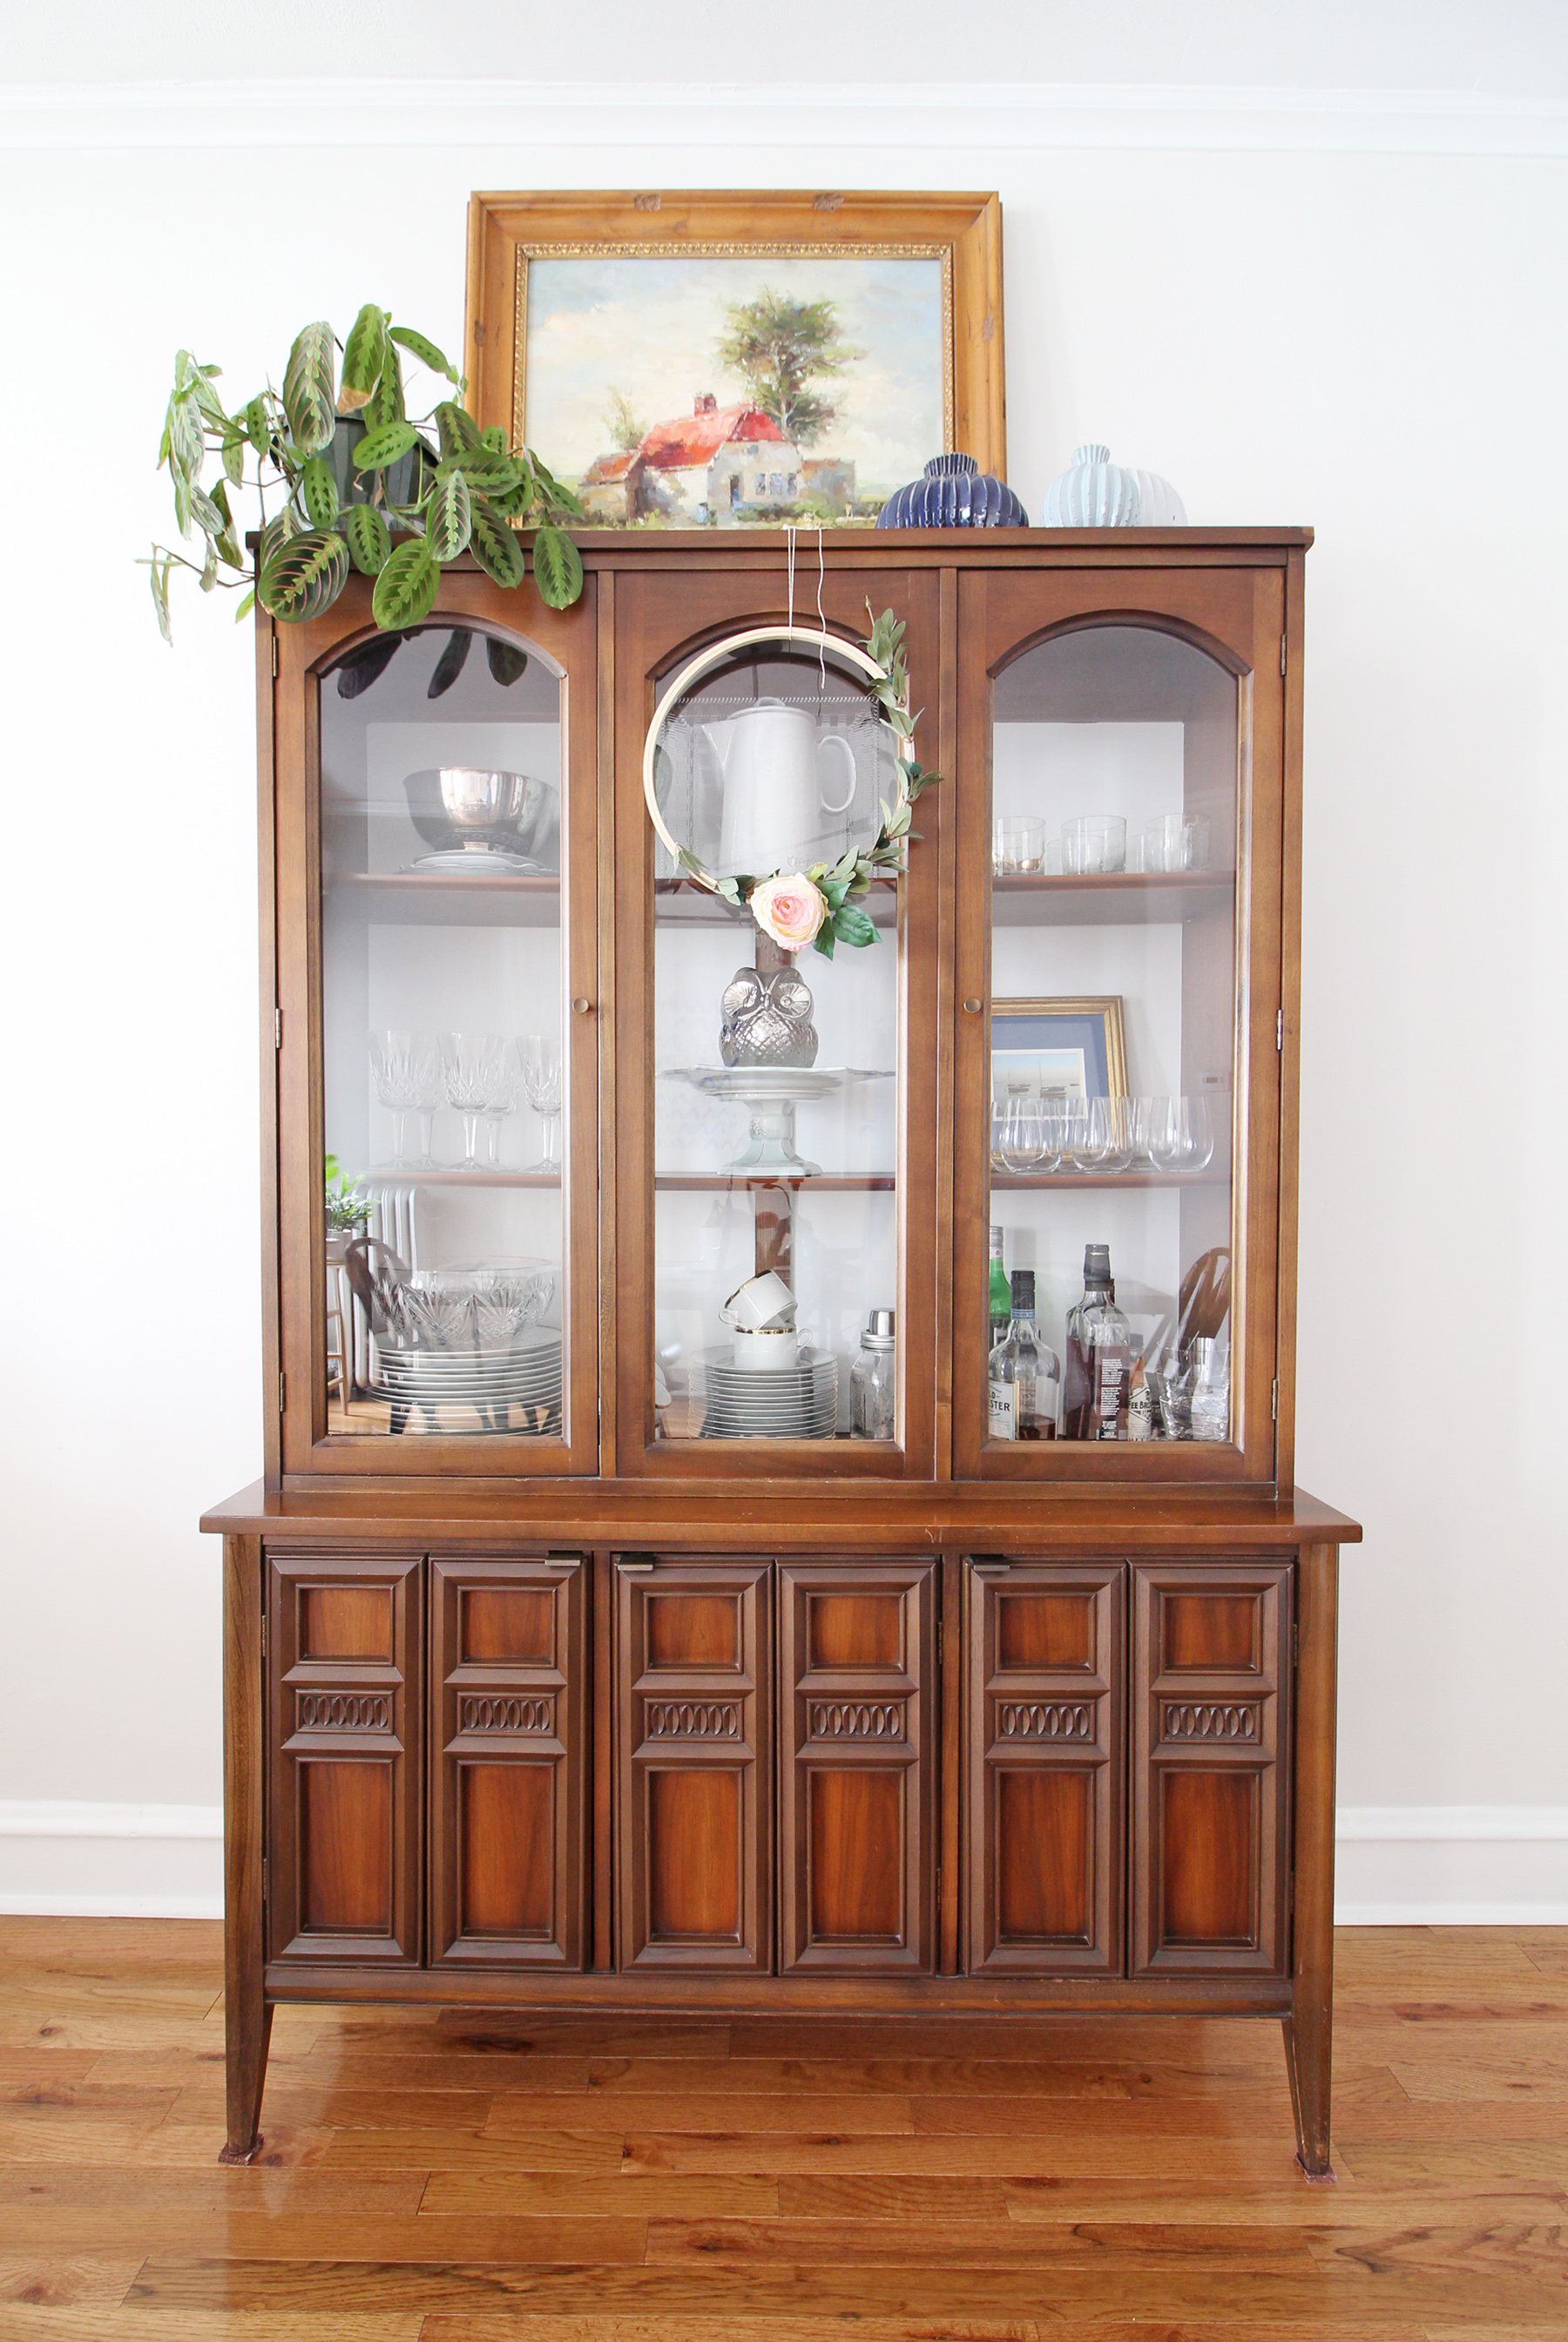 Mid-Century-Eclectic-Dining-Room-Hutch.jpg